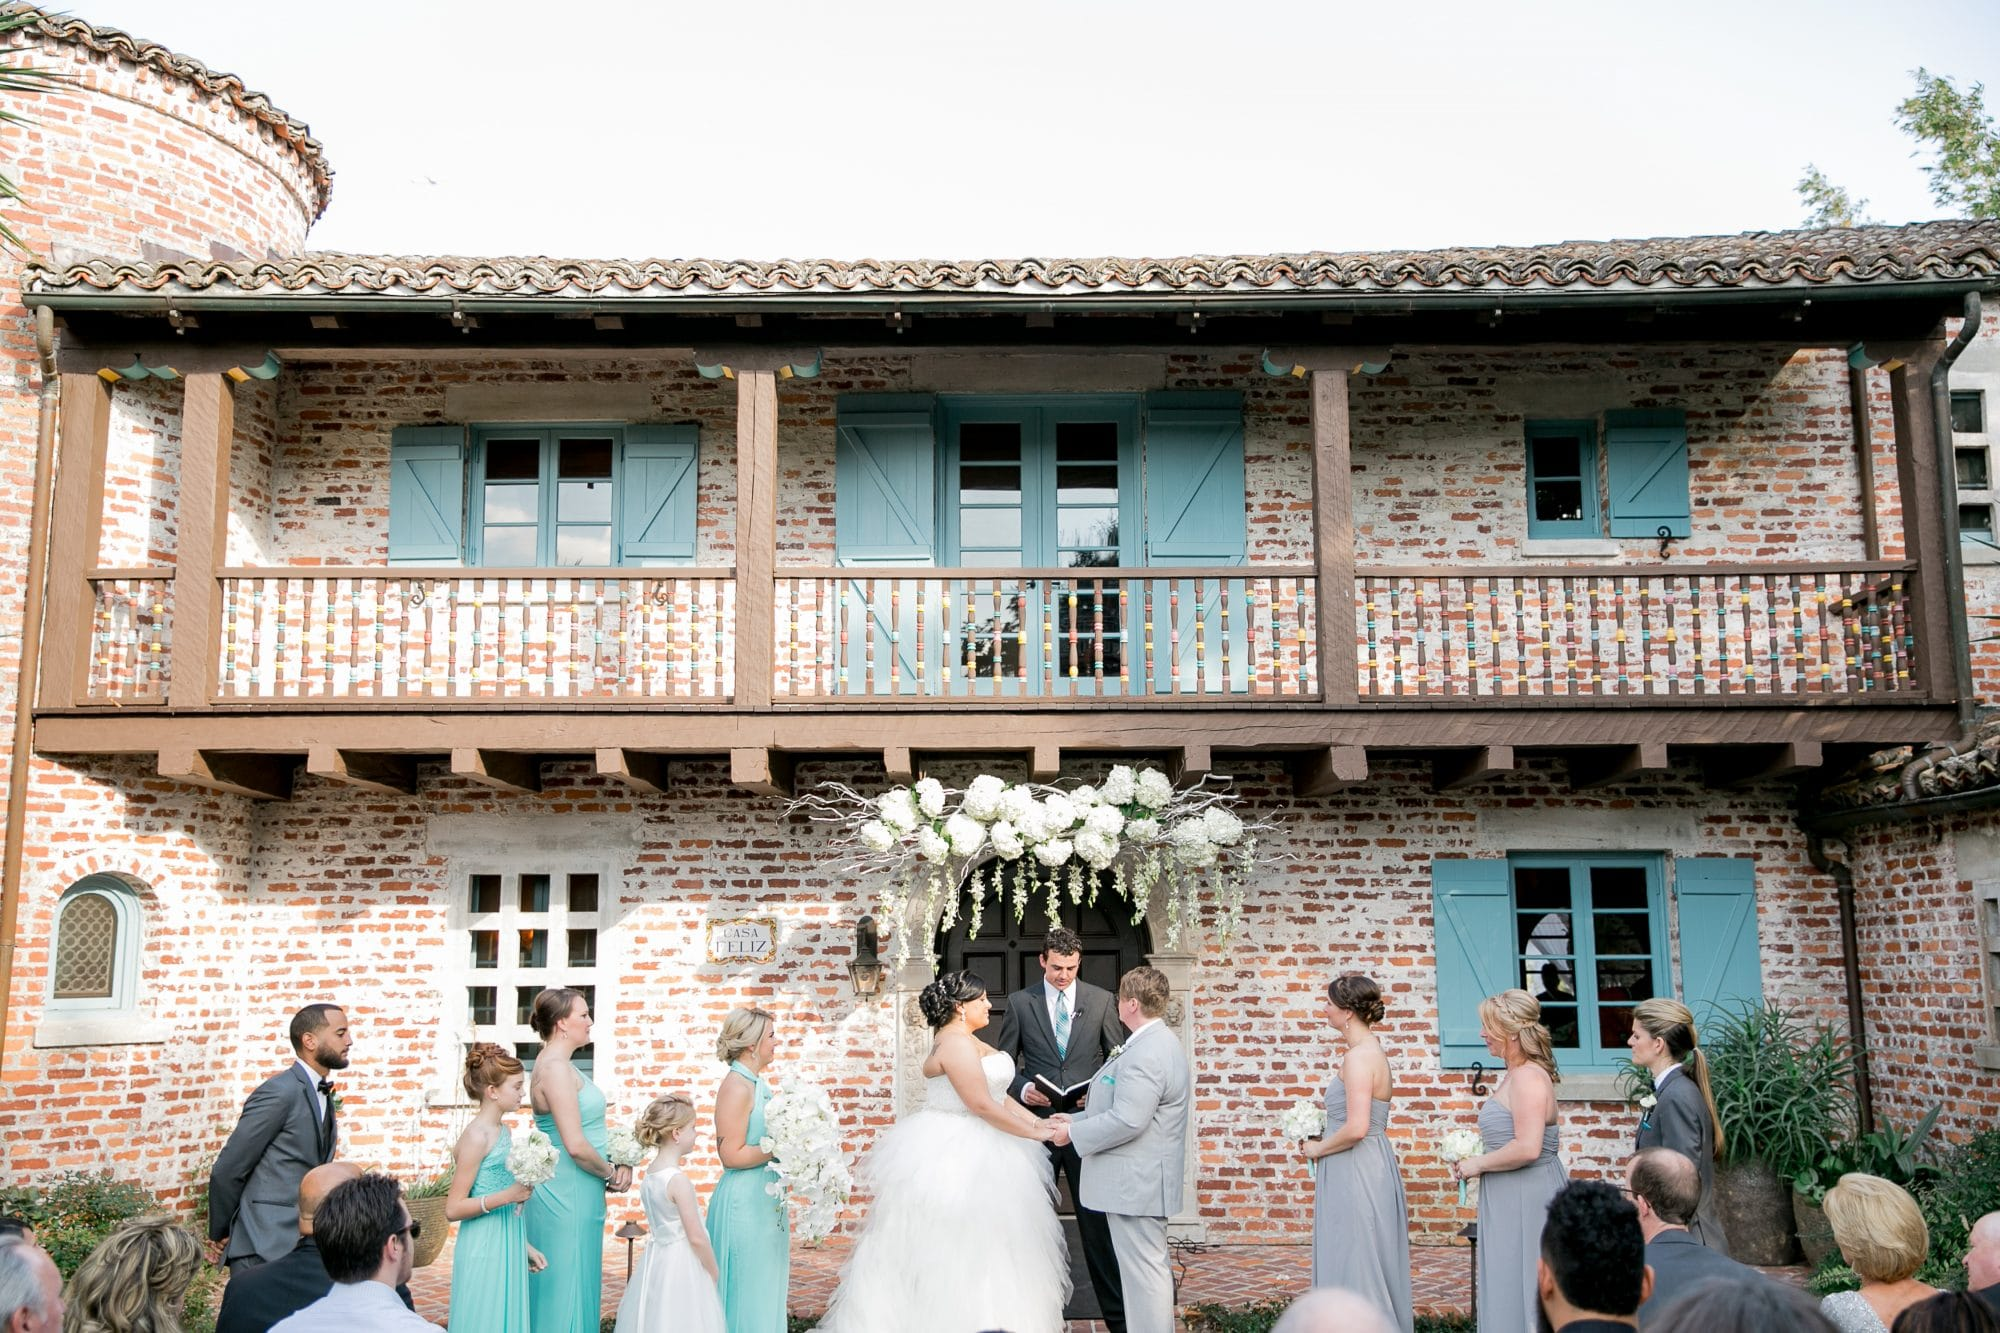 Casa Feliz - wedding ceremony in front of old brick building